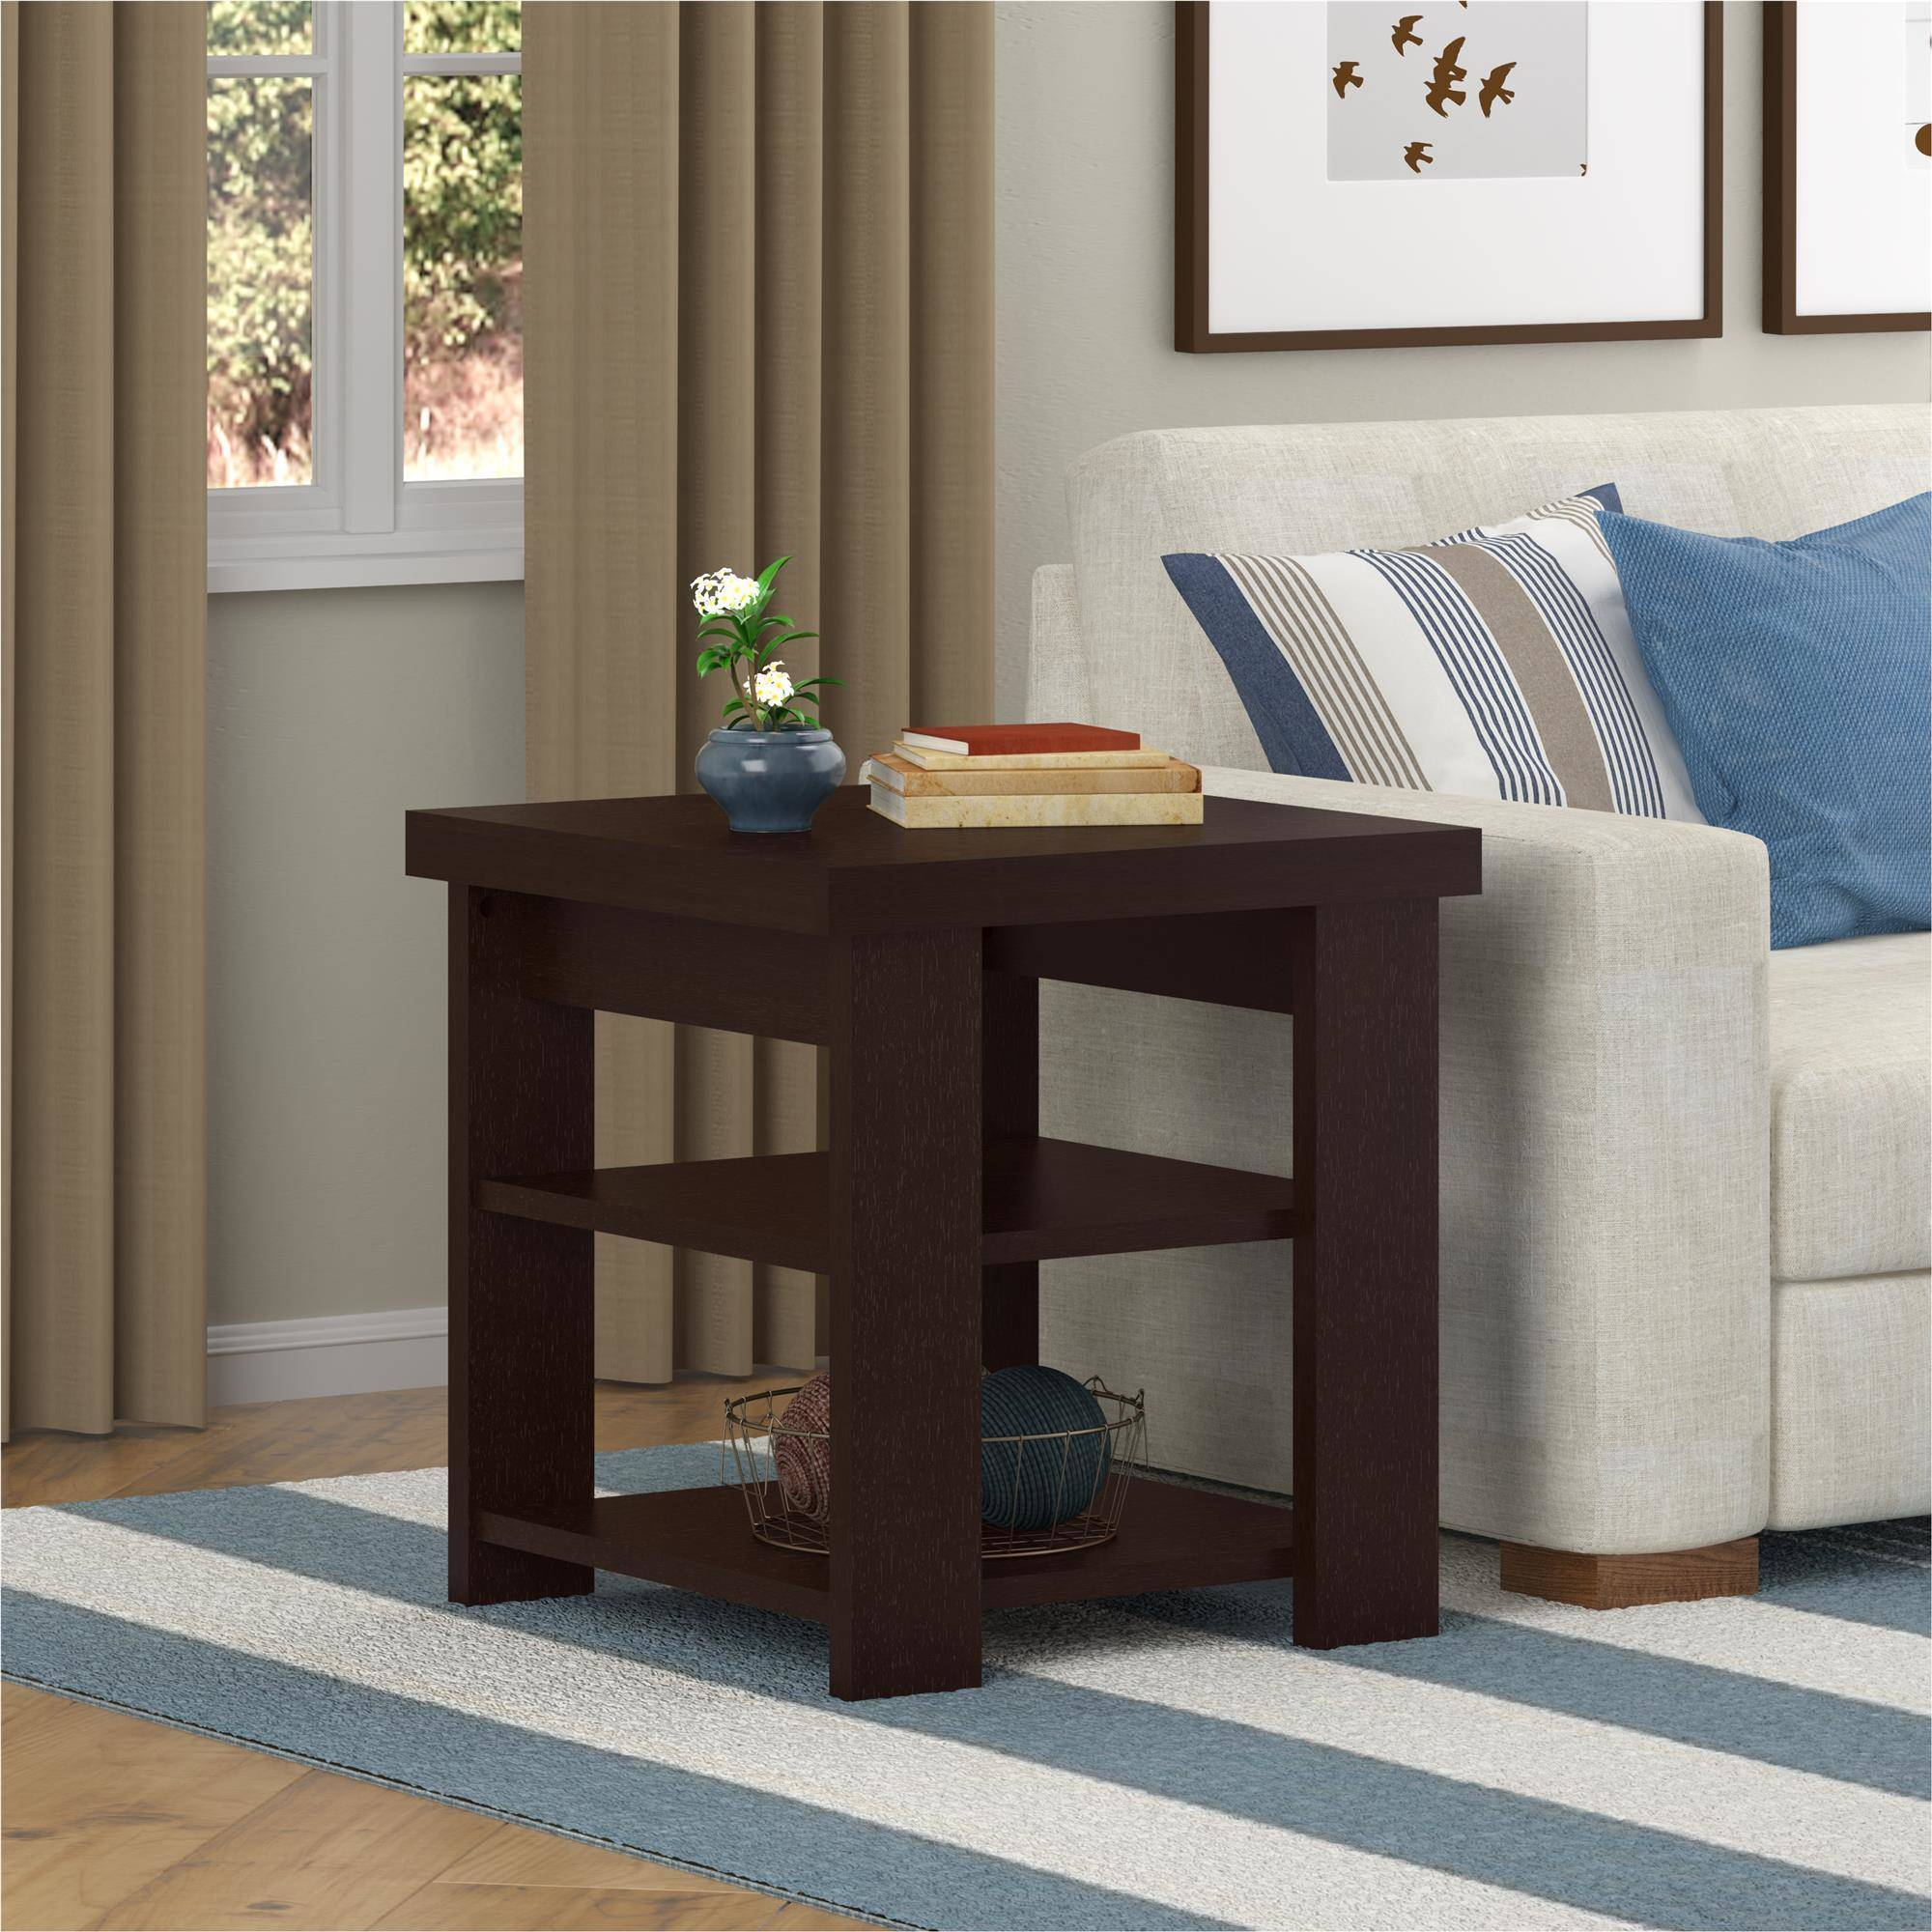 larkin espresso end tables value bundle small mid century table narrow glass console macys furniture bedroom sets industrial pallet magnolia house line ethan allen vanity set